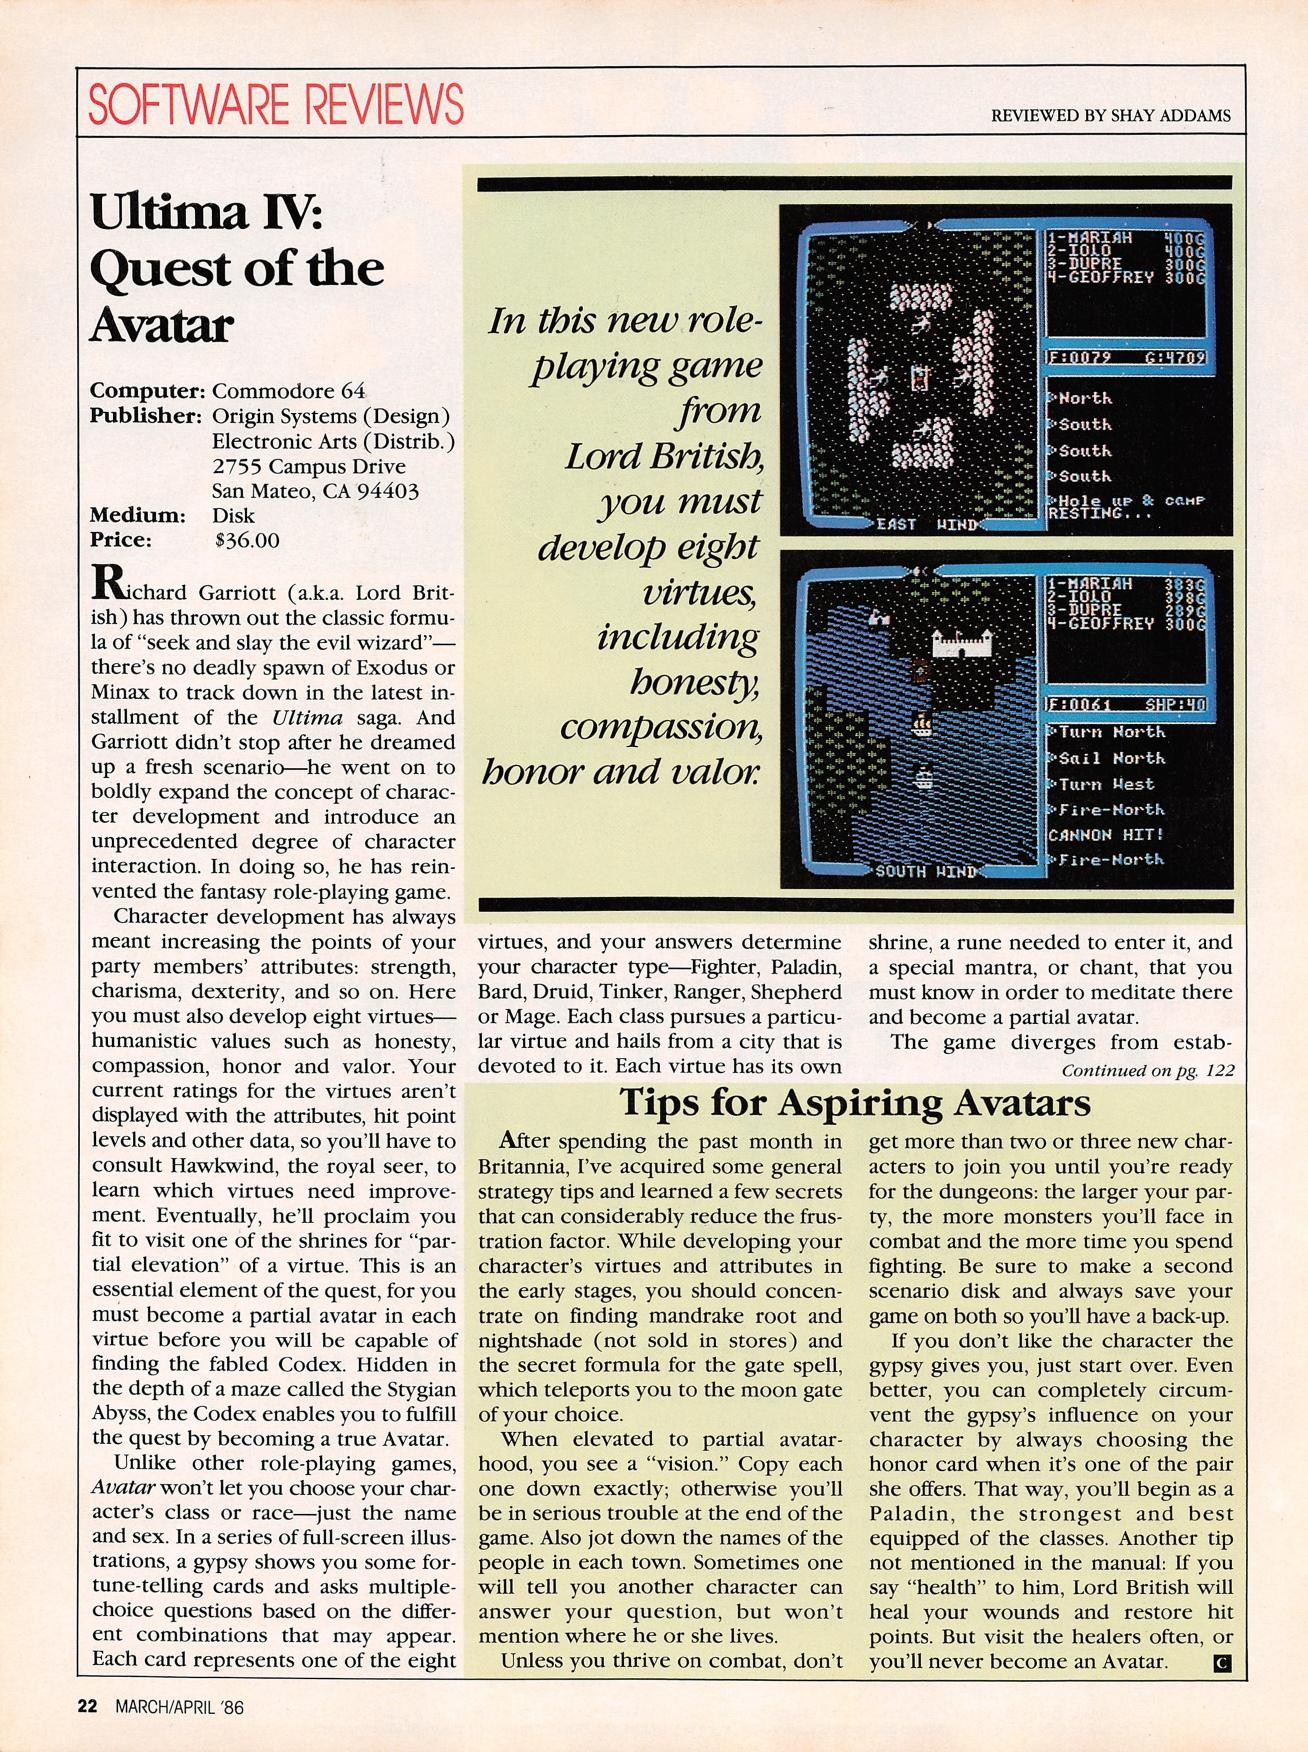 SOFTWARE REVIEWS REWEWEDBYSHAYADDAMS Ultima IV Quest of the Avatar puter modore 64 Publisher